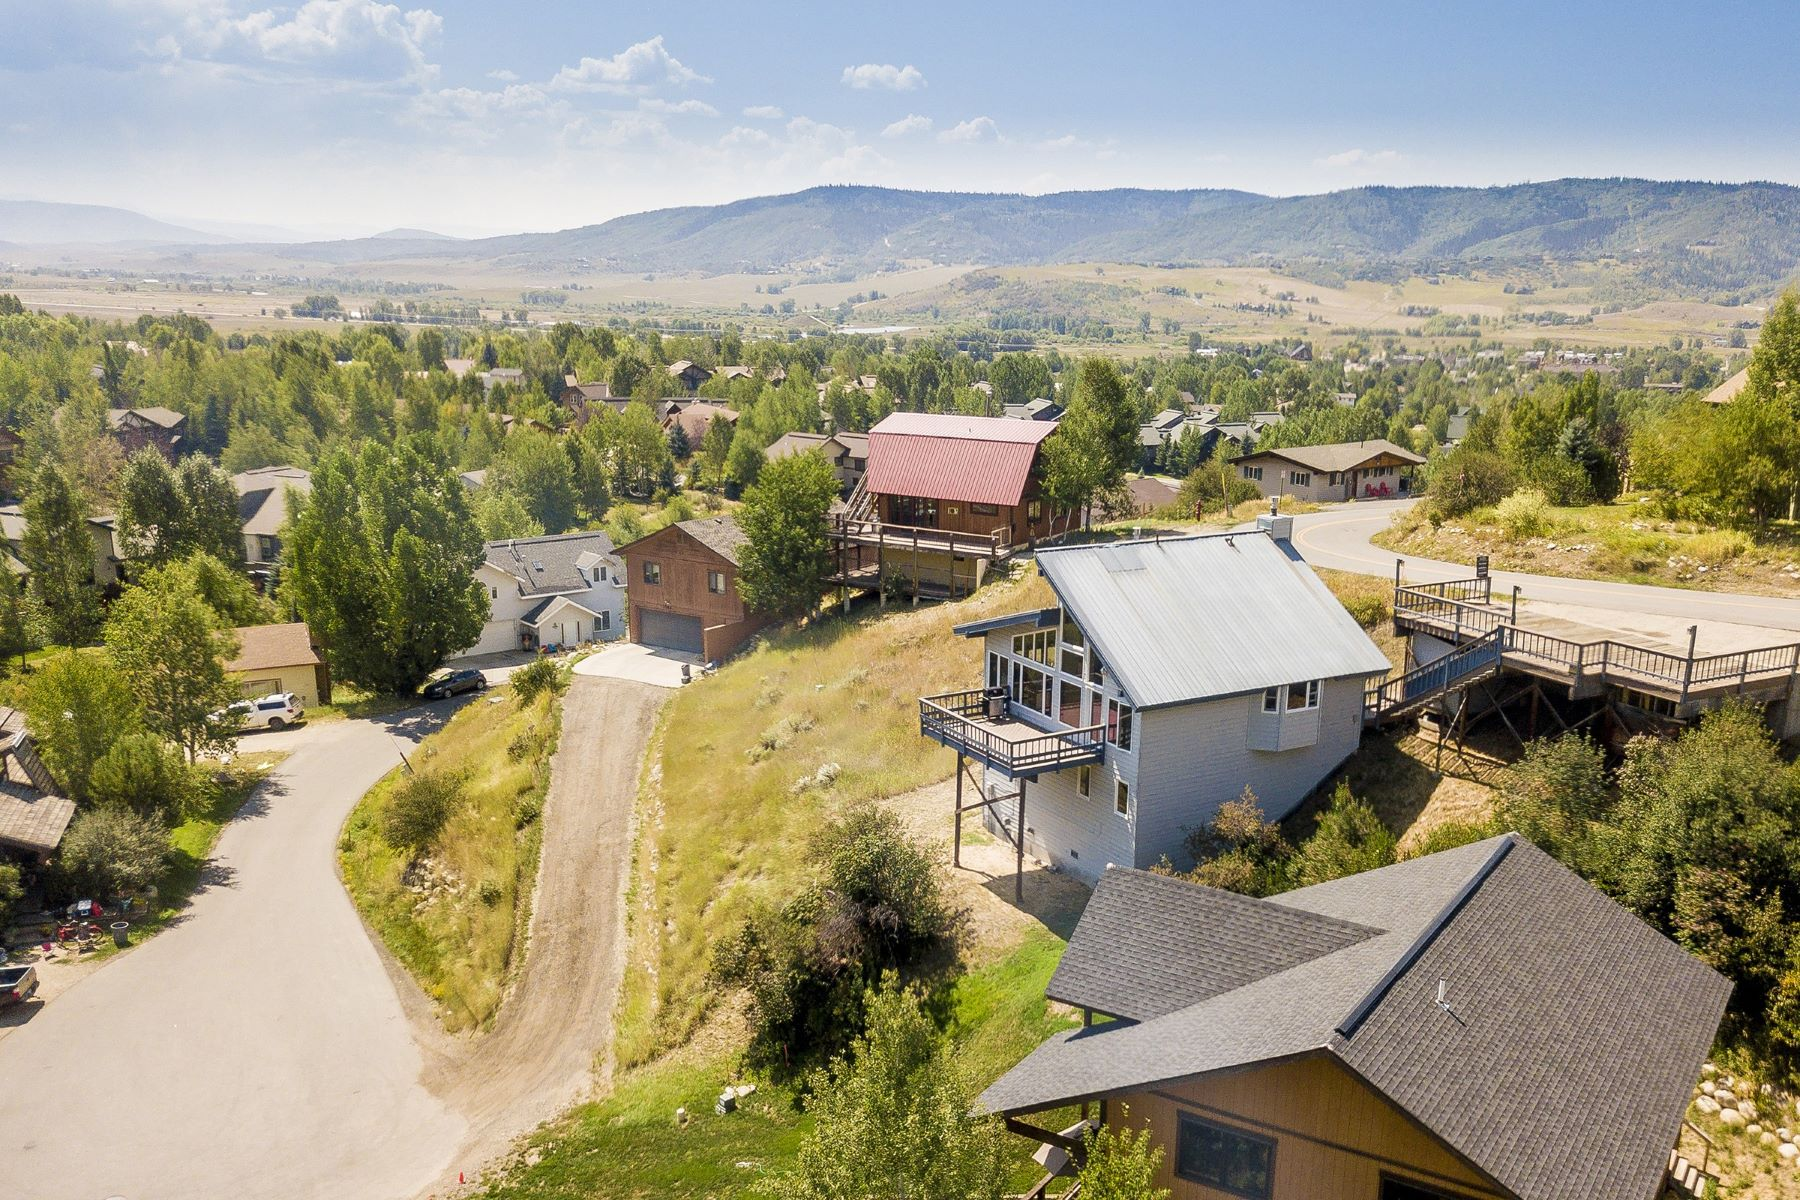 Additional photo for property listing at Views from the Mountain 3300 Apres Ski Way Steamboat Springs, Colorado 80487 United States